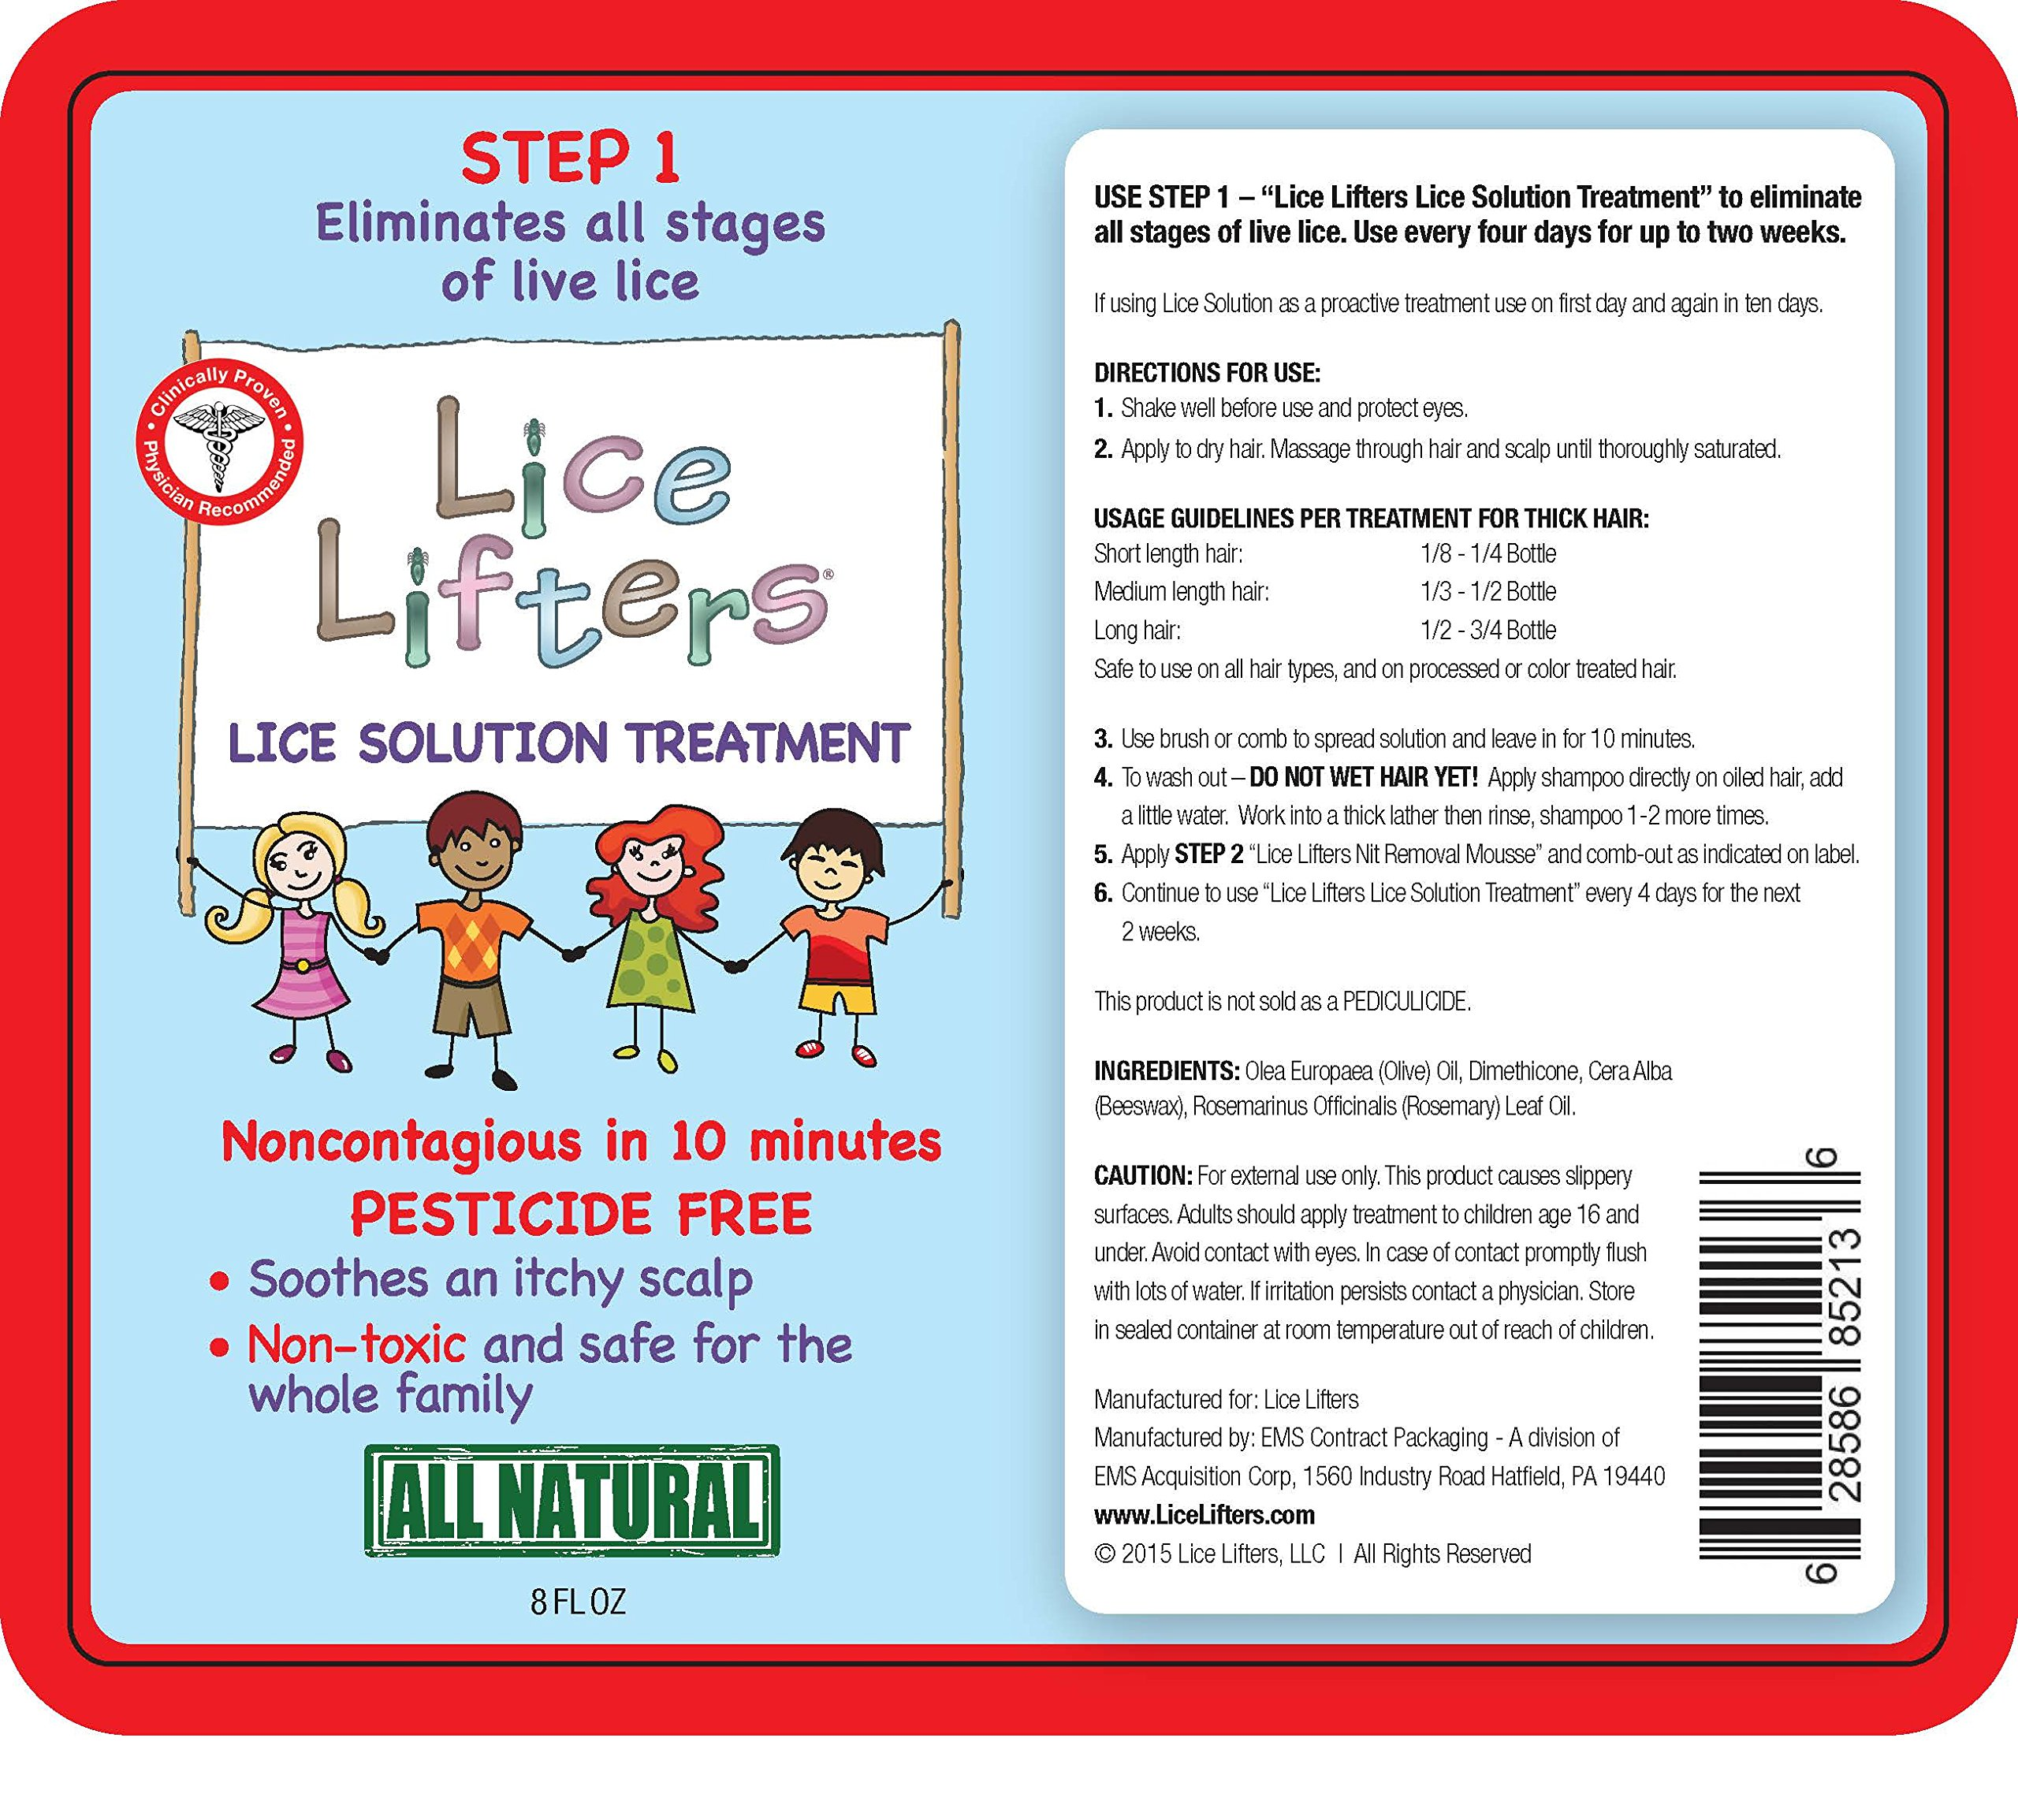 Lice Lifters Lice Solution Treatment (Eliminates Lice) in 10 Minutes. All Natural, Pesticide and Chemical Free Lice Treatment.Natural Alternative to Rid,Nix,Lice M,Fairy Tales.